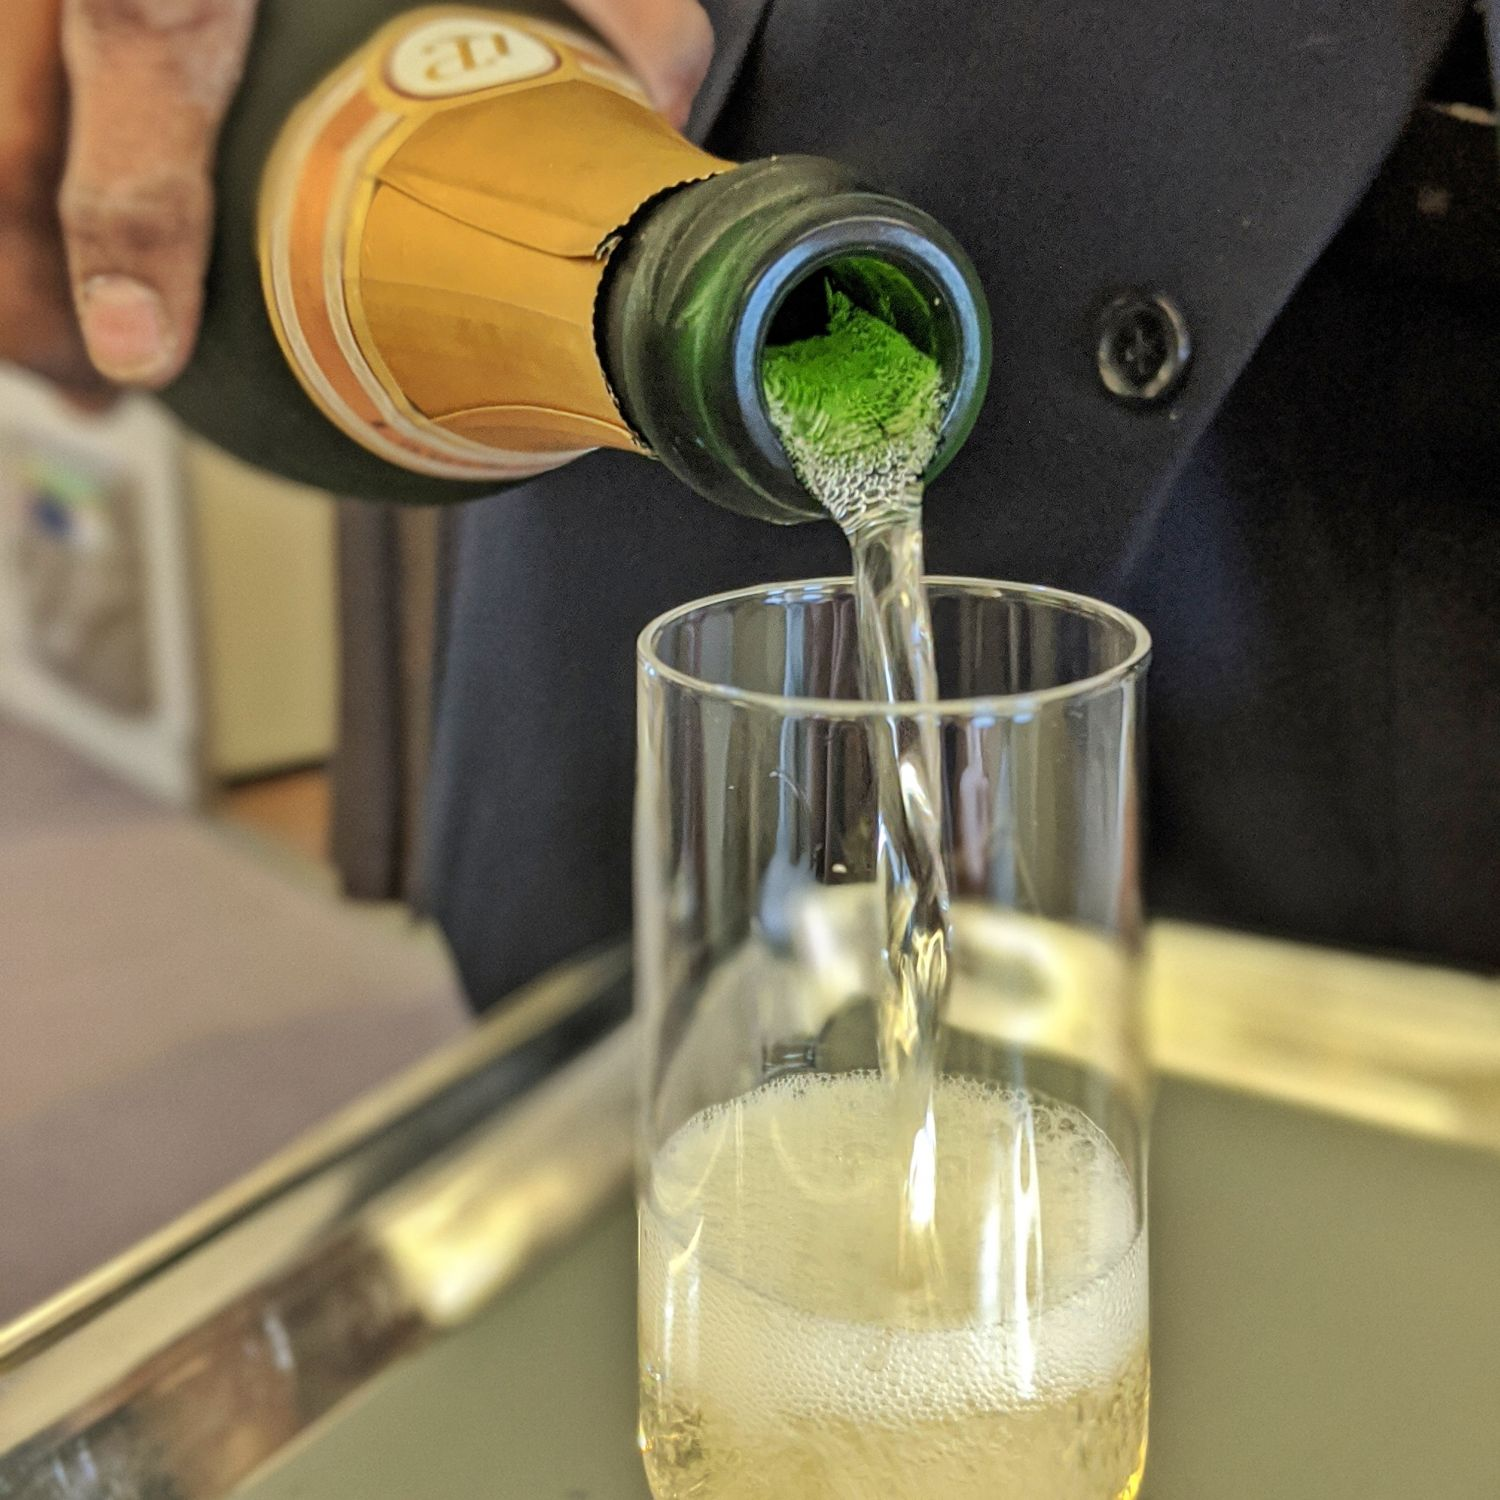 Regional Business Class on Singapore Airlines SQ998 Airbus A330-300 Laurent-Perrier Champagne